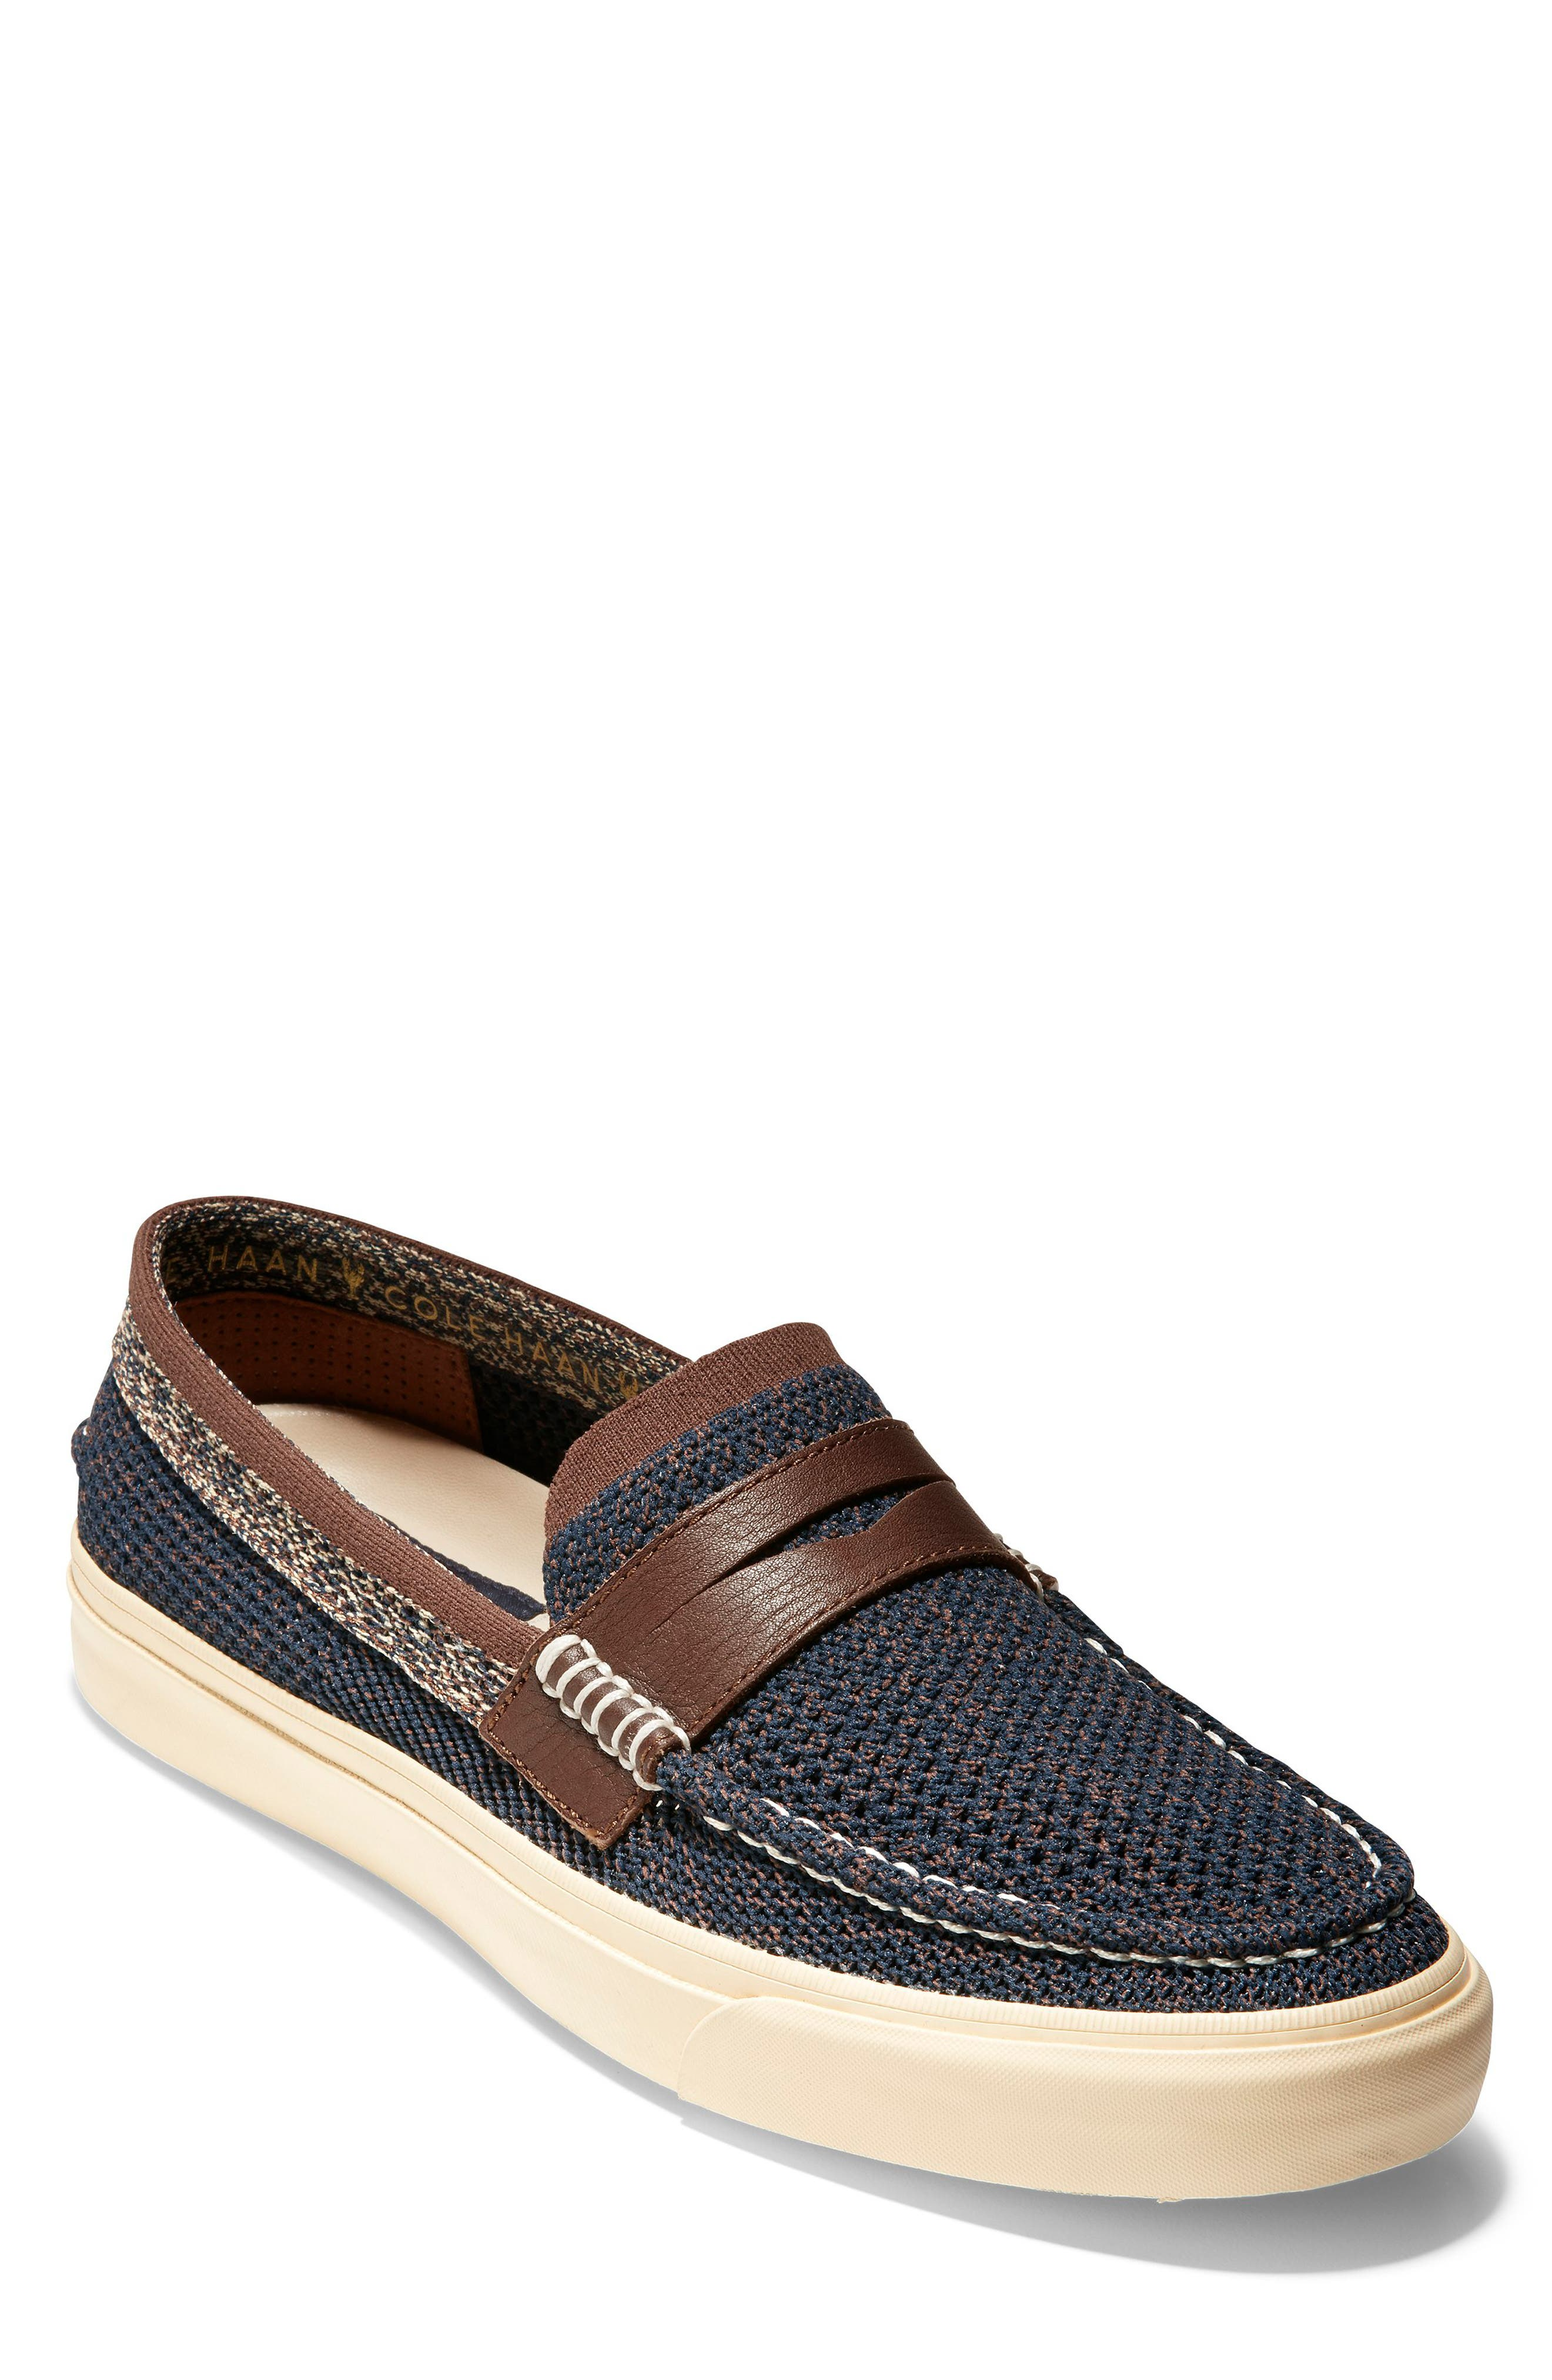 Cole Haan Pinch Weekend Lx Penny Loafer- Blue